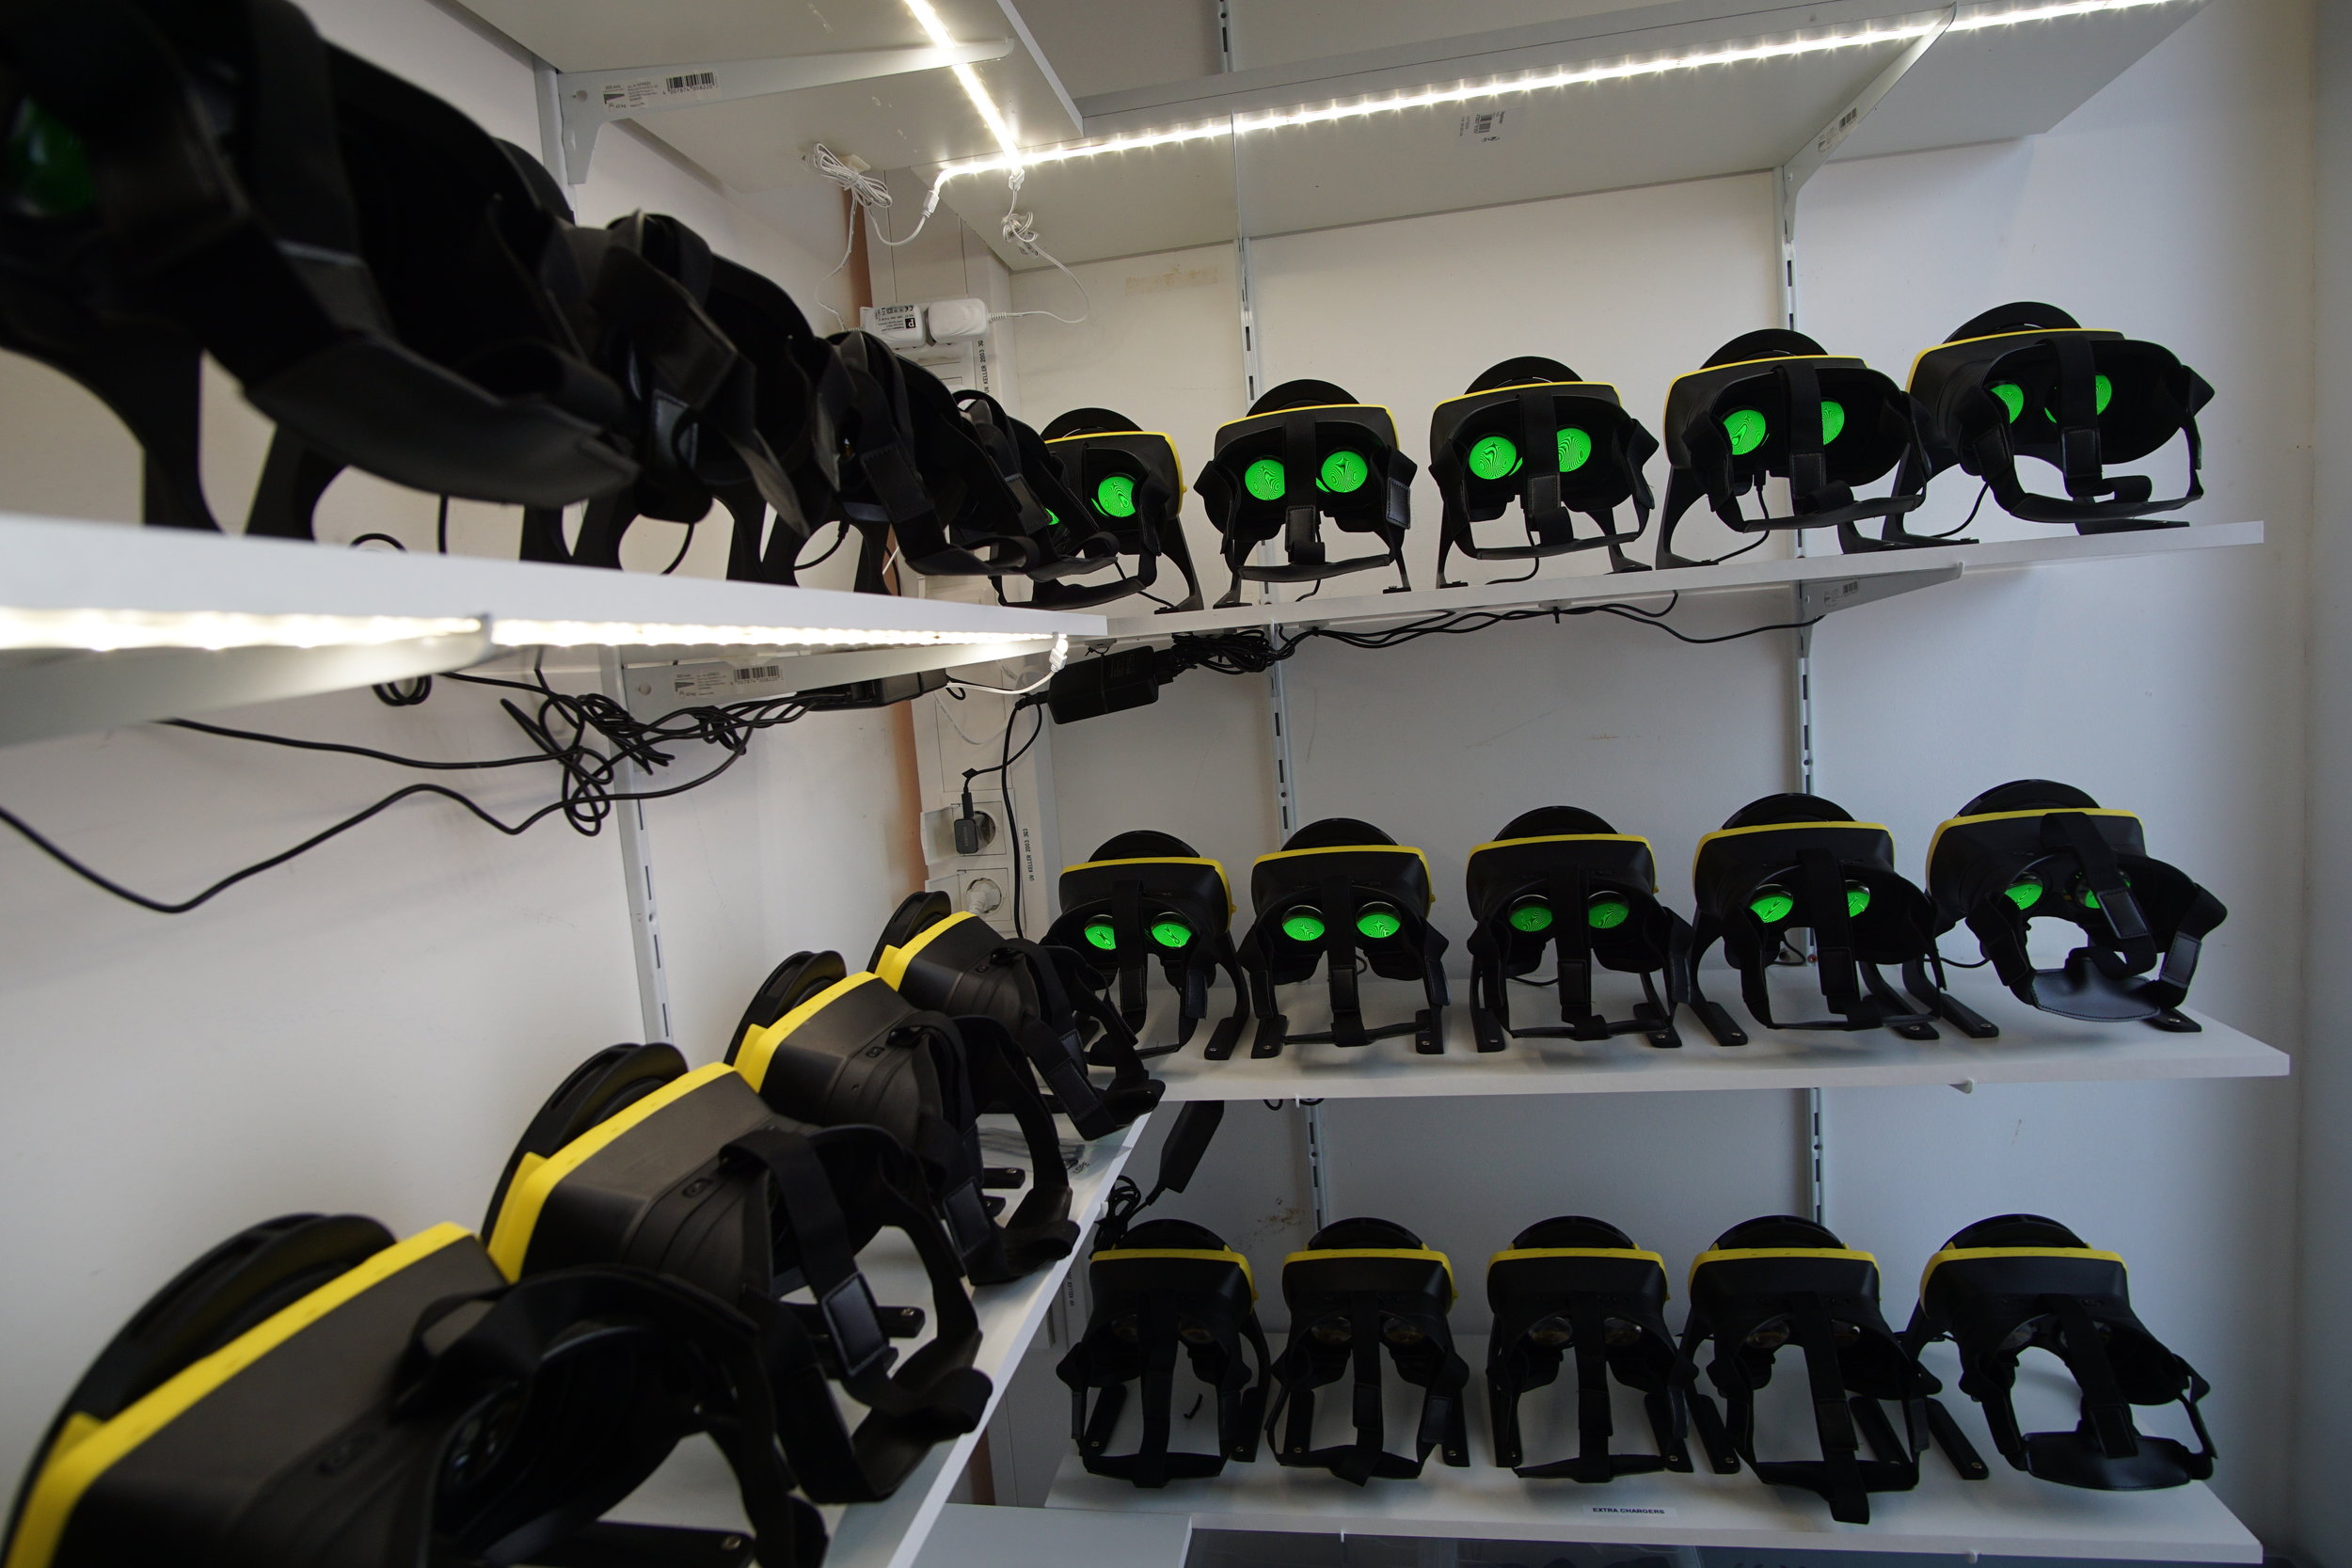 Charging cabinet and analytics - At the end of operation, each headset docks in a charging cabinet and wirelessly sends information from that day's operations to our secure servers. We deliver high quality analytic reports about rider capacity, content selection and headset performance.